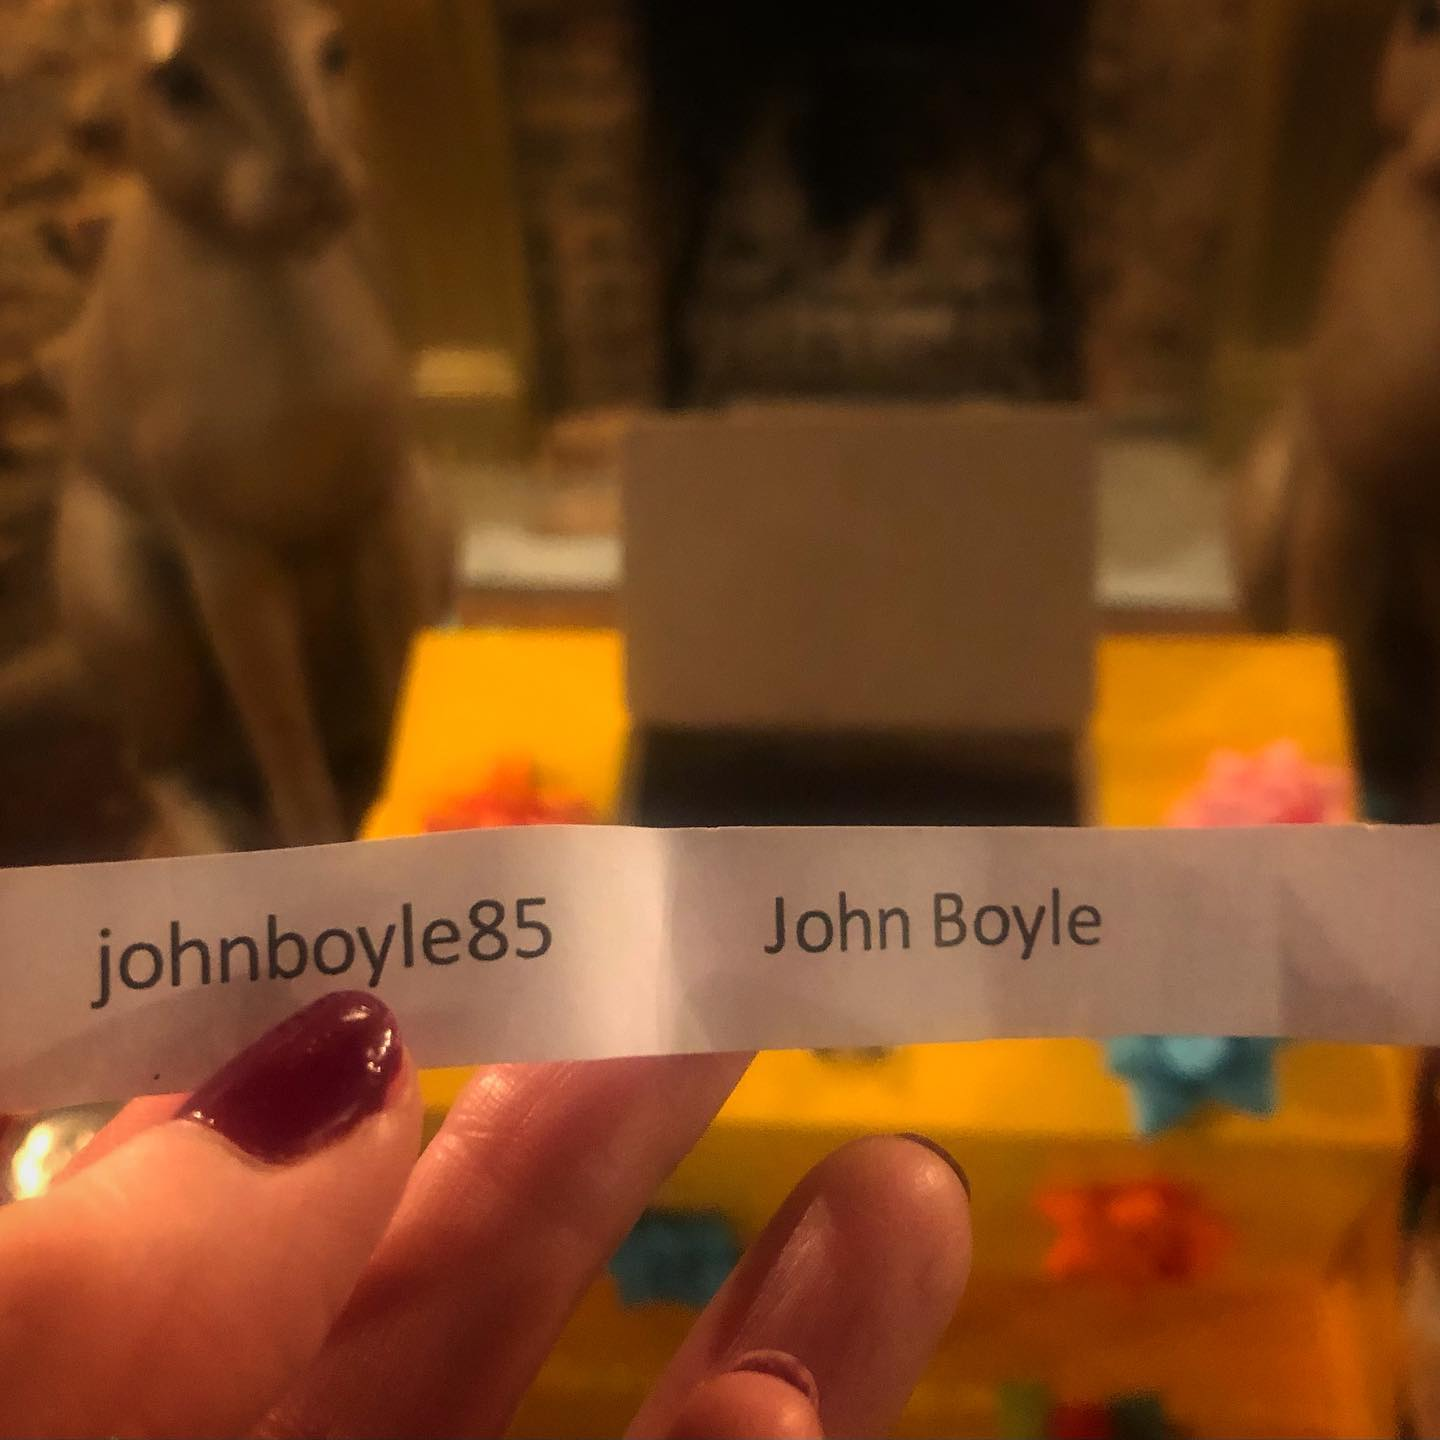 WELL we were feeling so festive for our 1st birthday weekend, and as we had well over 200 entries to our draw, we decided to pick out another two names!  Congrats @hpelling  and @johnboyle85 - you both get a cheeky little runner up prize from us! 👌🏼💫💪🏼🍻🥳  #happybirthday #happybirthdaytous #london #competition #islingtonpubs #competitiontime #pubsofinstagram #partytime🎉 #partyparty #londonpubs #lockdownparty #goodtimes #birthdaygiveaway #lockdownpub #essexroad #canonbury #hackney #localpub #staysafeeveryone #londoncocktails #hellolondon #freebies #supportlocal #supportlocalbusiness #pubsoflondon #londonbylondoners